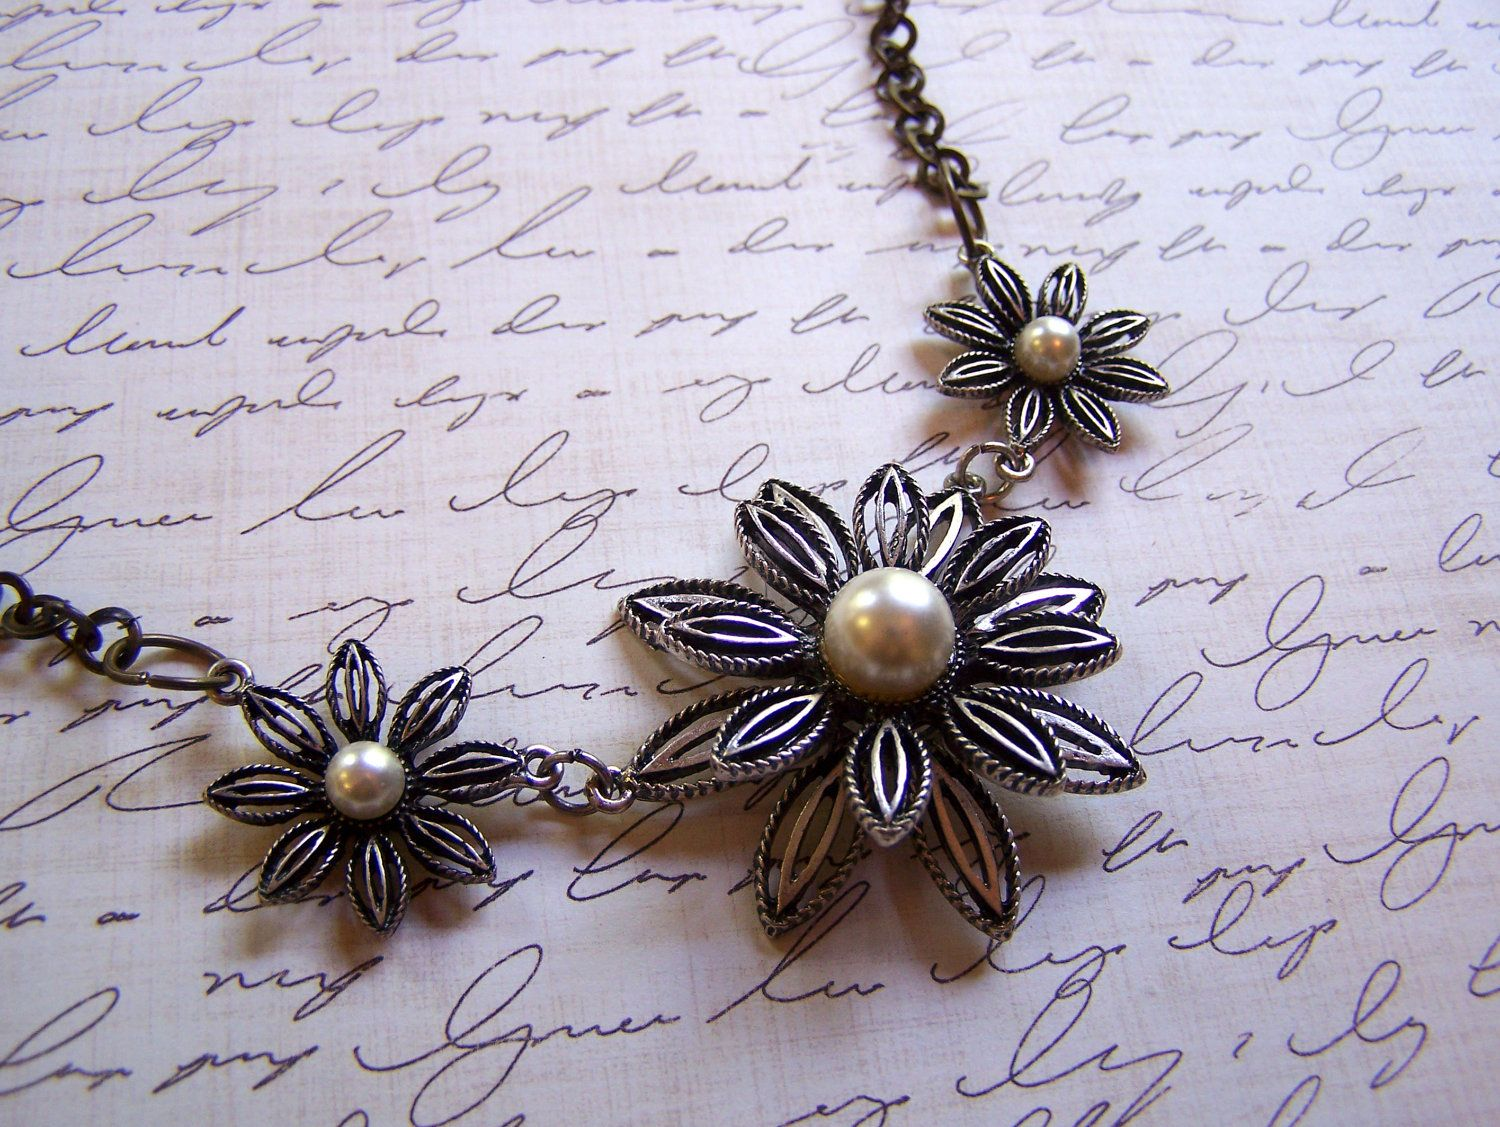 Vintage Inspired Silver Metal Flower Trio and Faux Pearl Statement Necklace. $22.00, via Etsy.